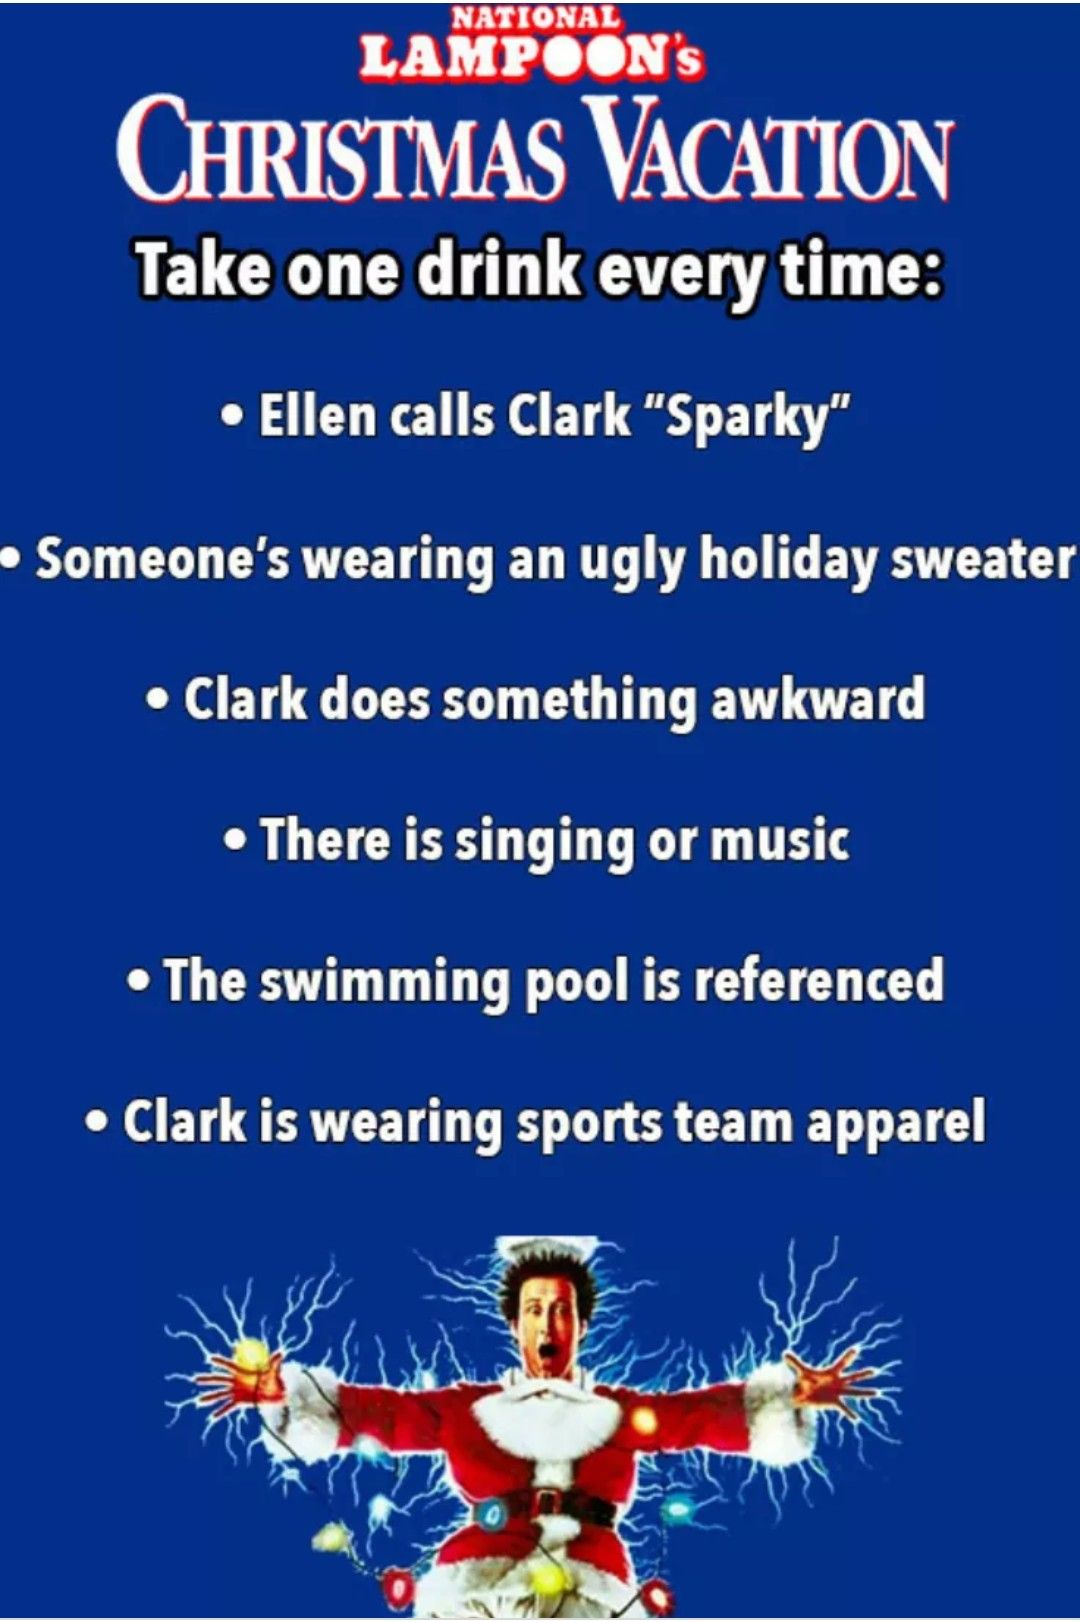 National Lampoon's Christmas Vacation drinking game